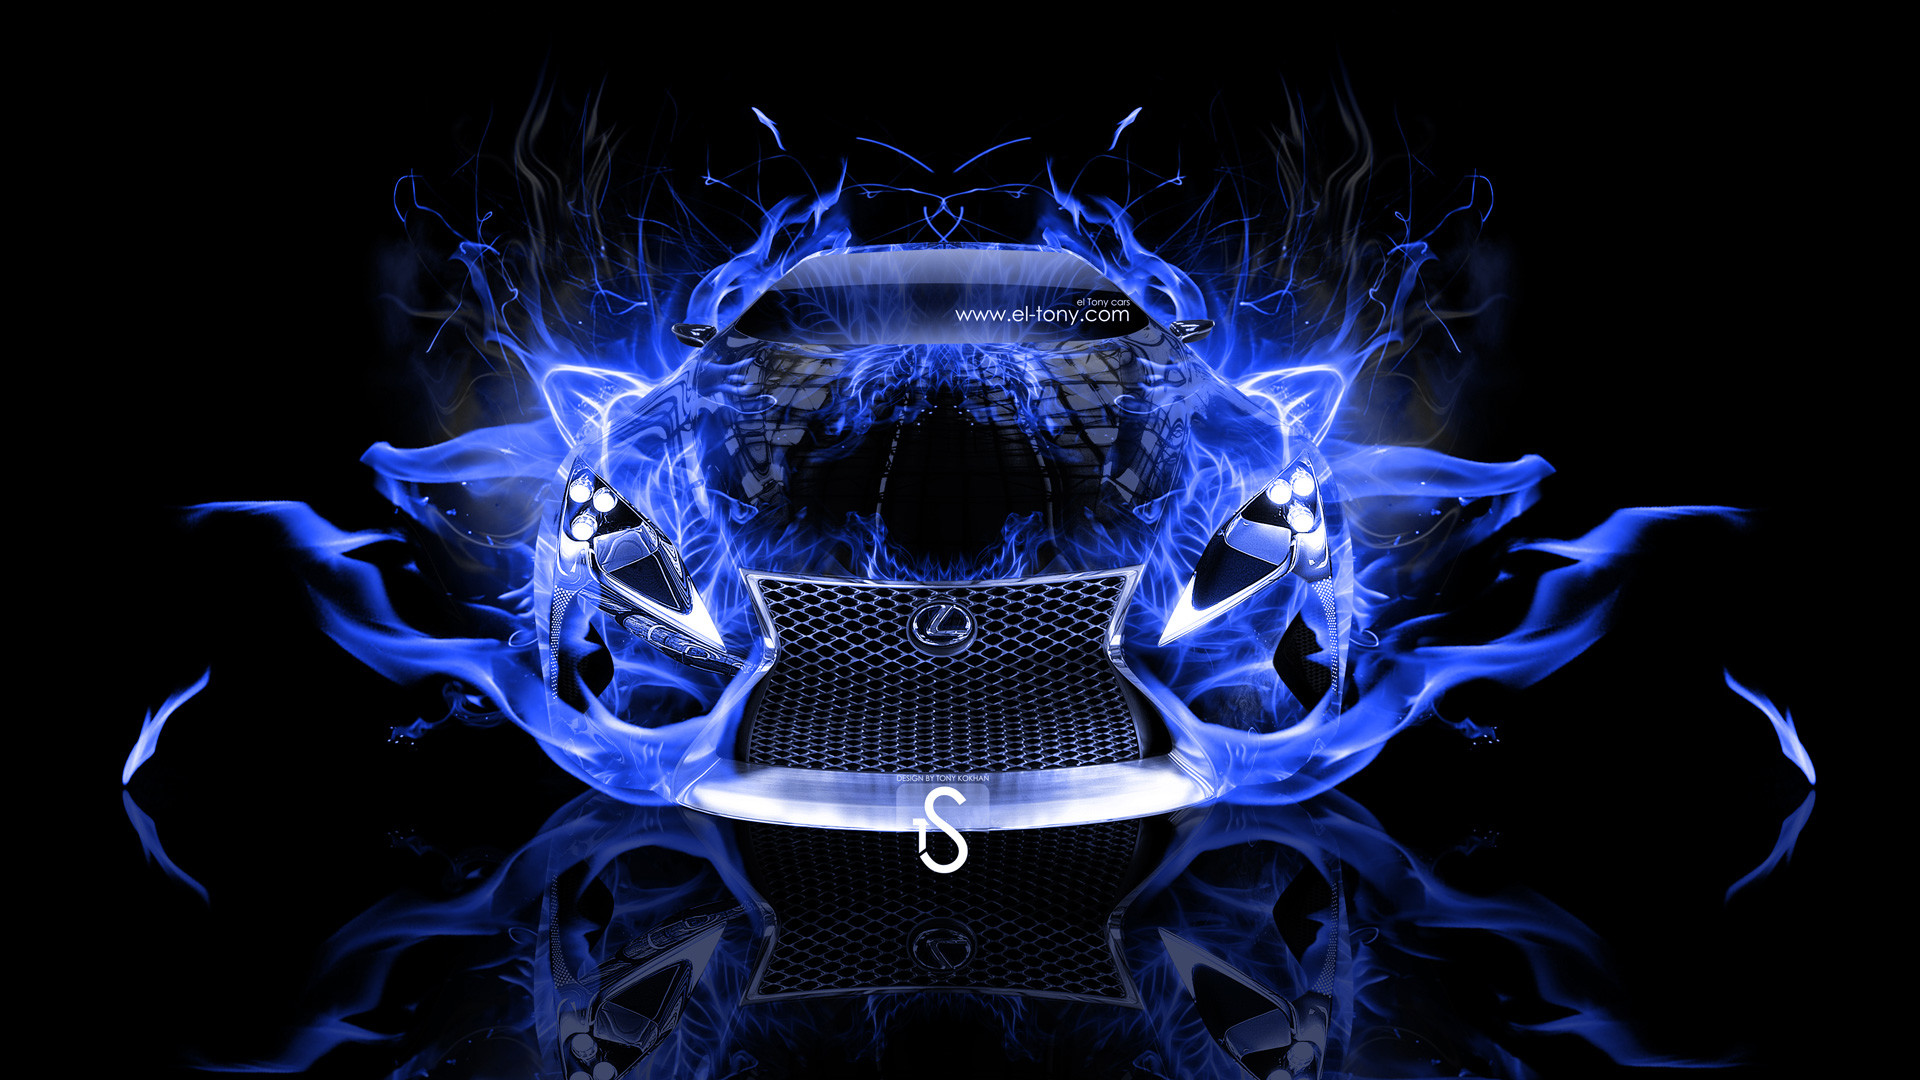 Cool Fire Wallpapers Images - Cool cars on fire